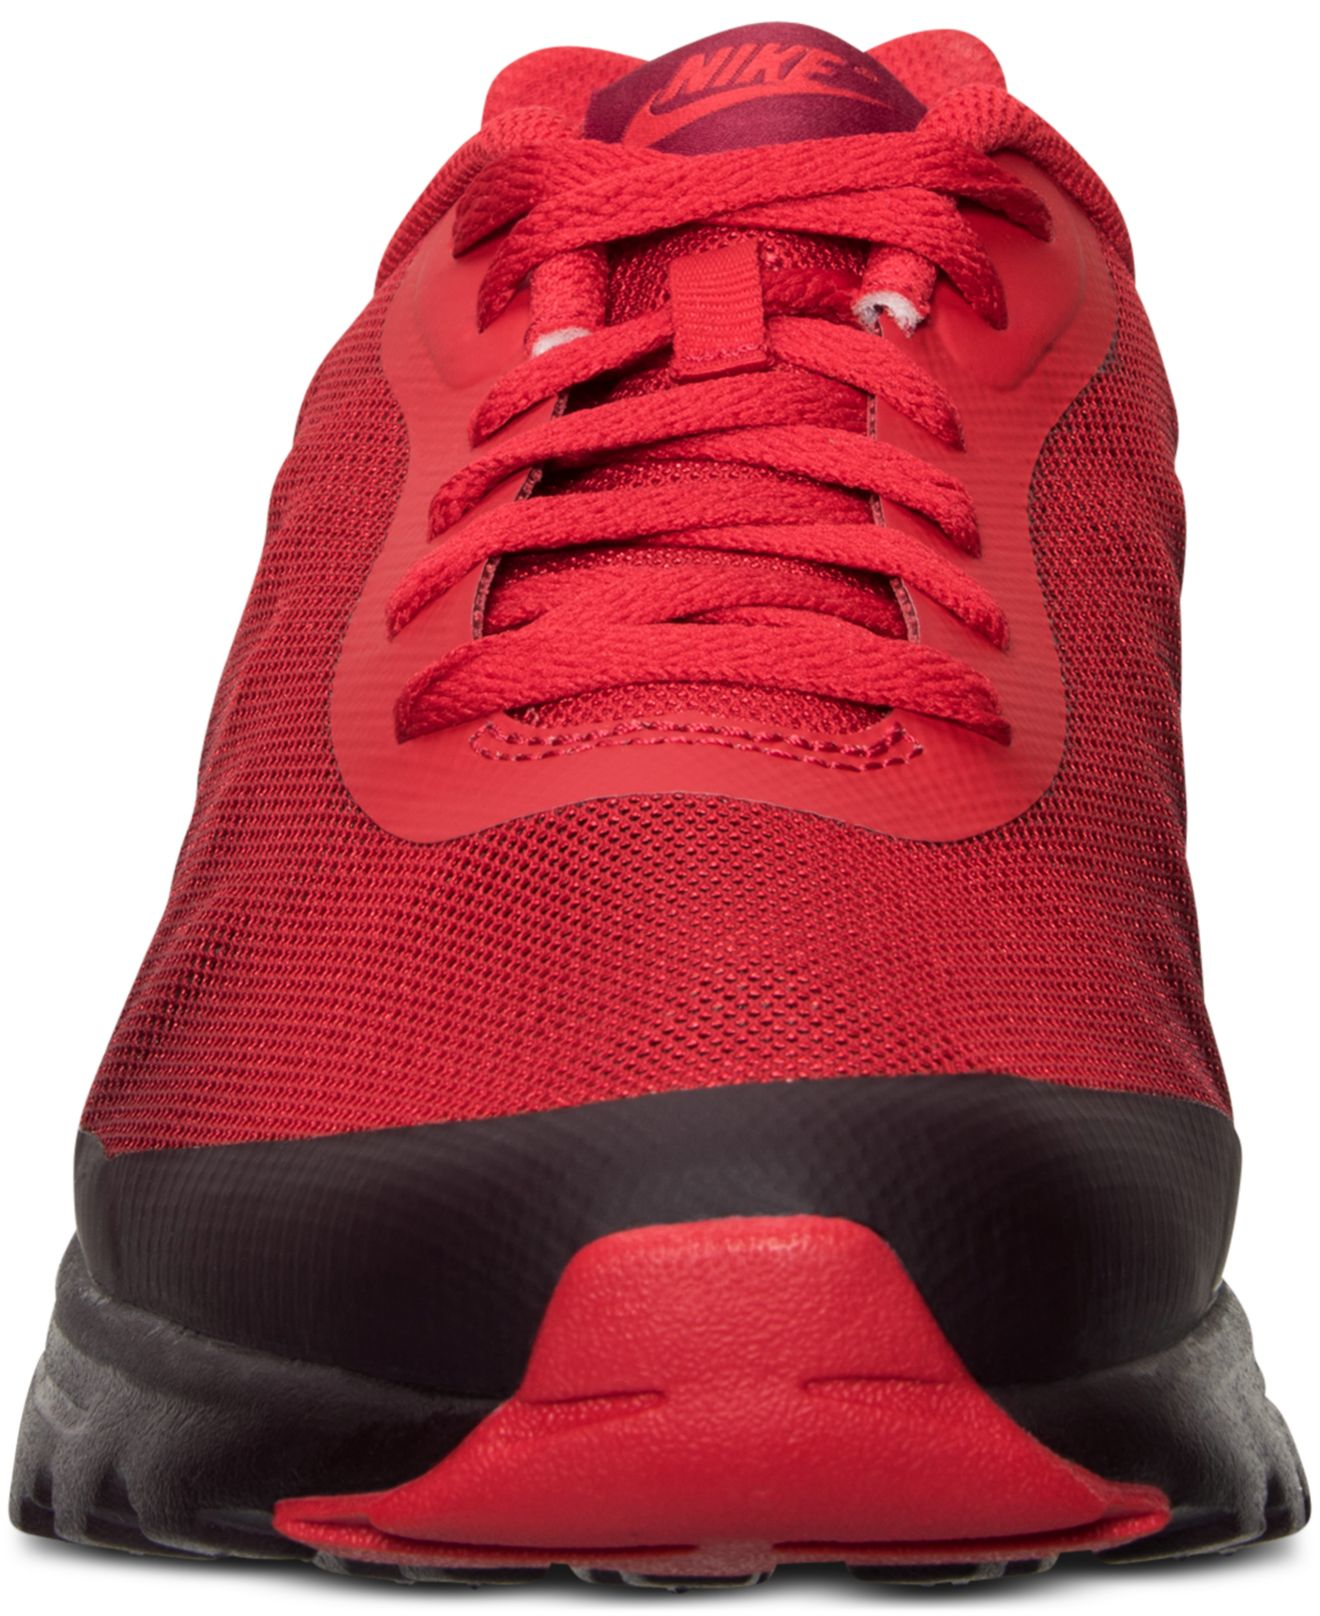 2fb93ee809 ... closeout lyst nike mens air max invigor print running sneakers from  3154a bc842